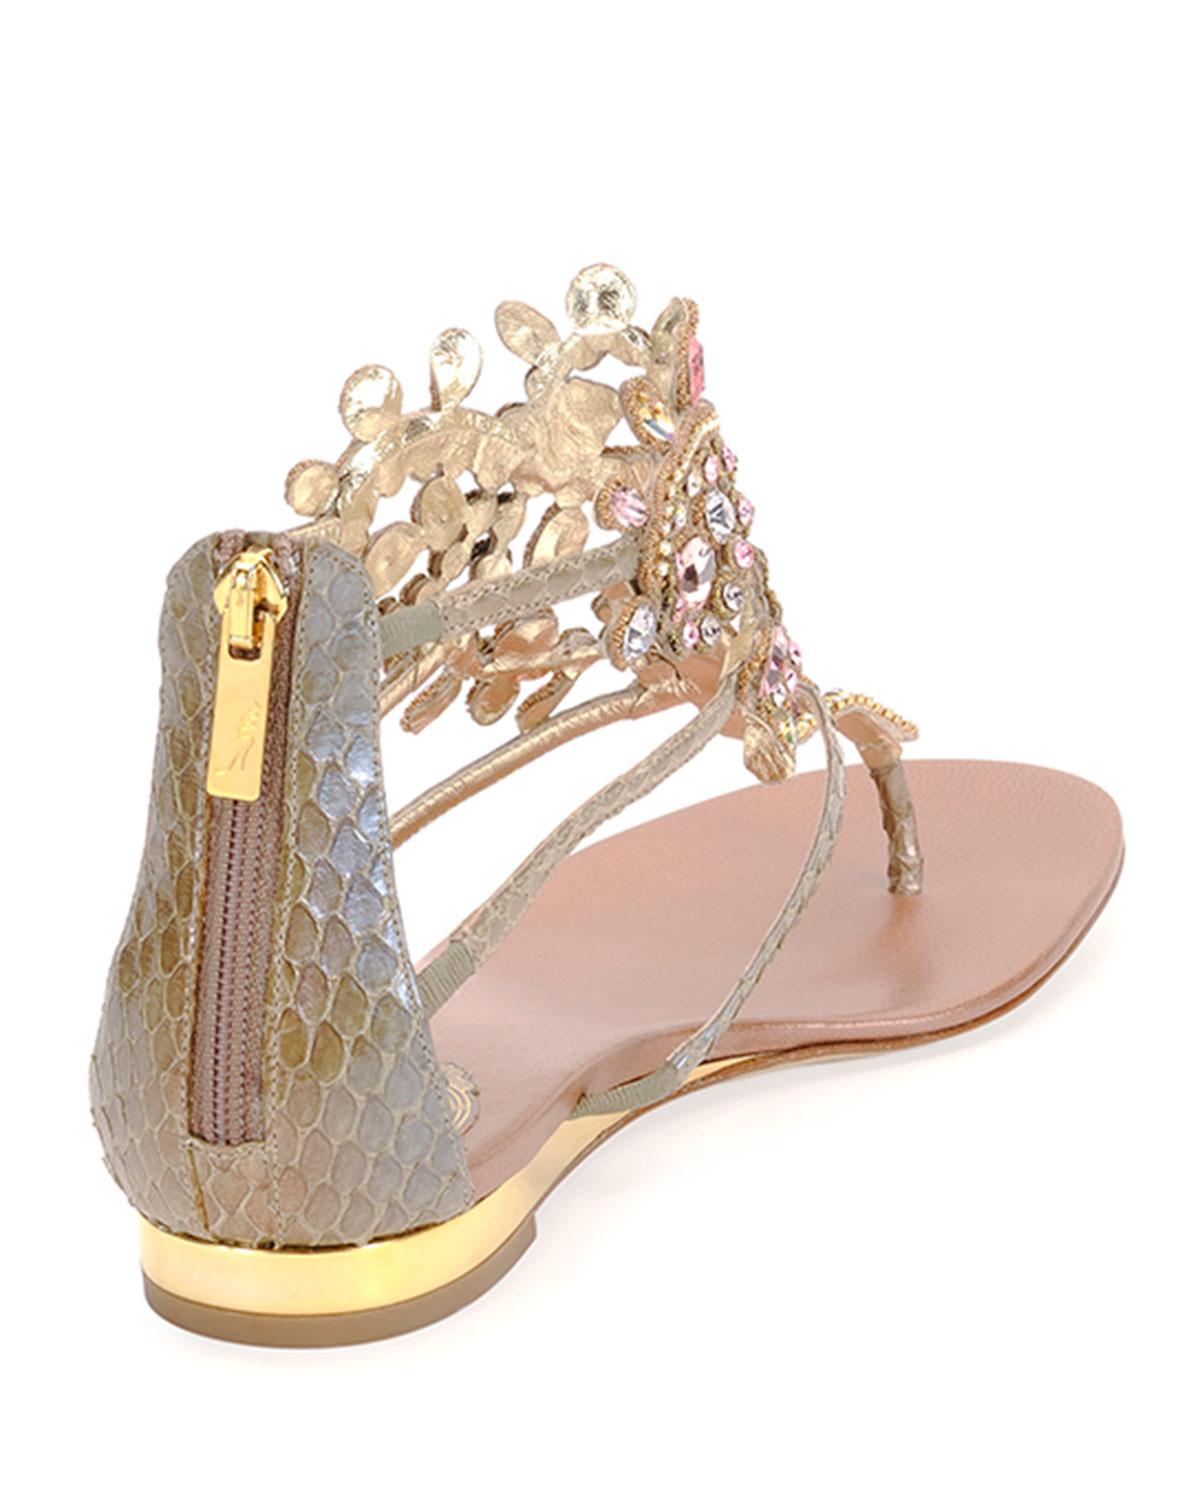 Rene caovilla Crystal-Chandelier Leather Thong Sandals in Natural ...